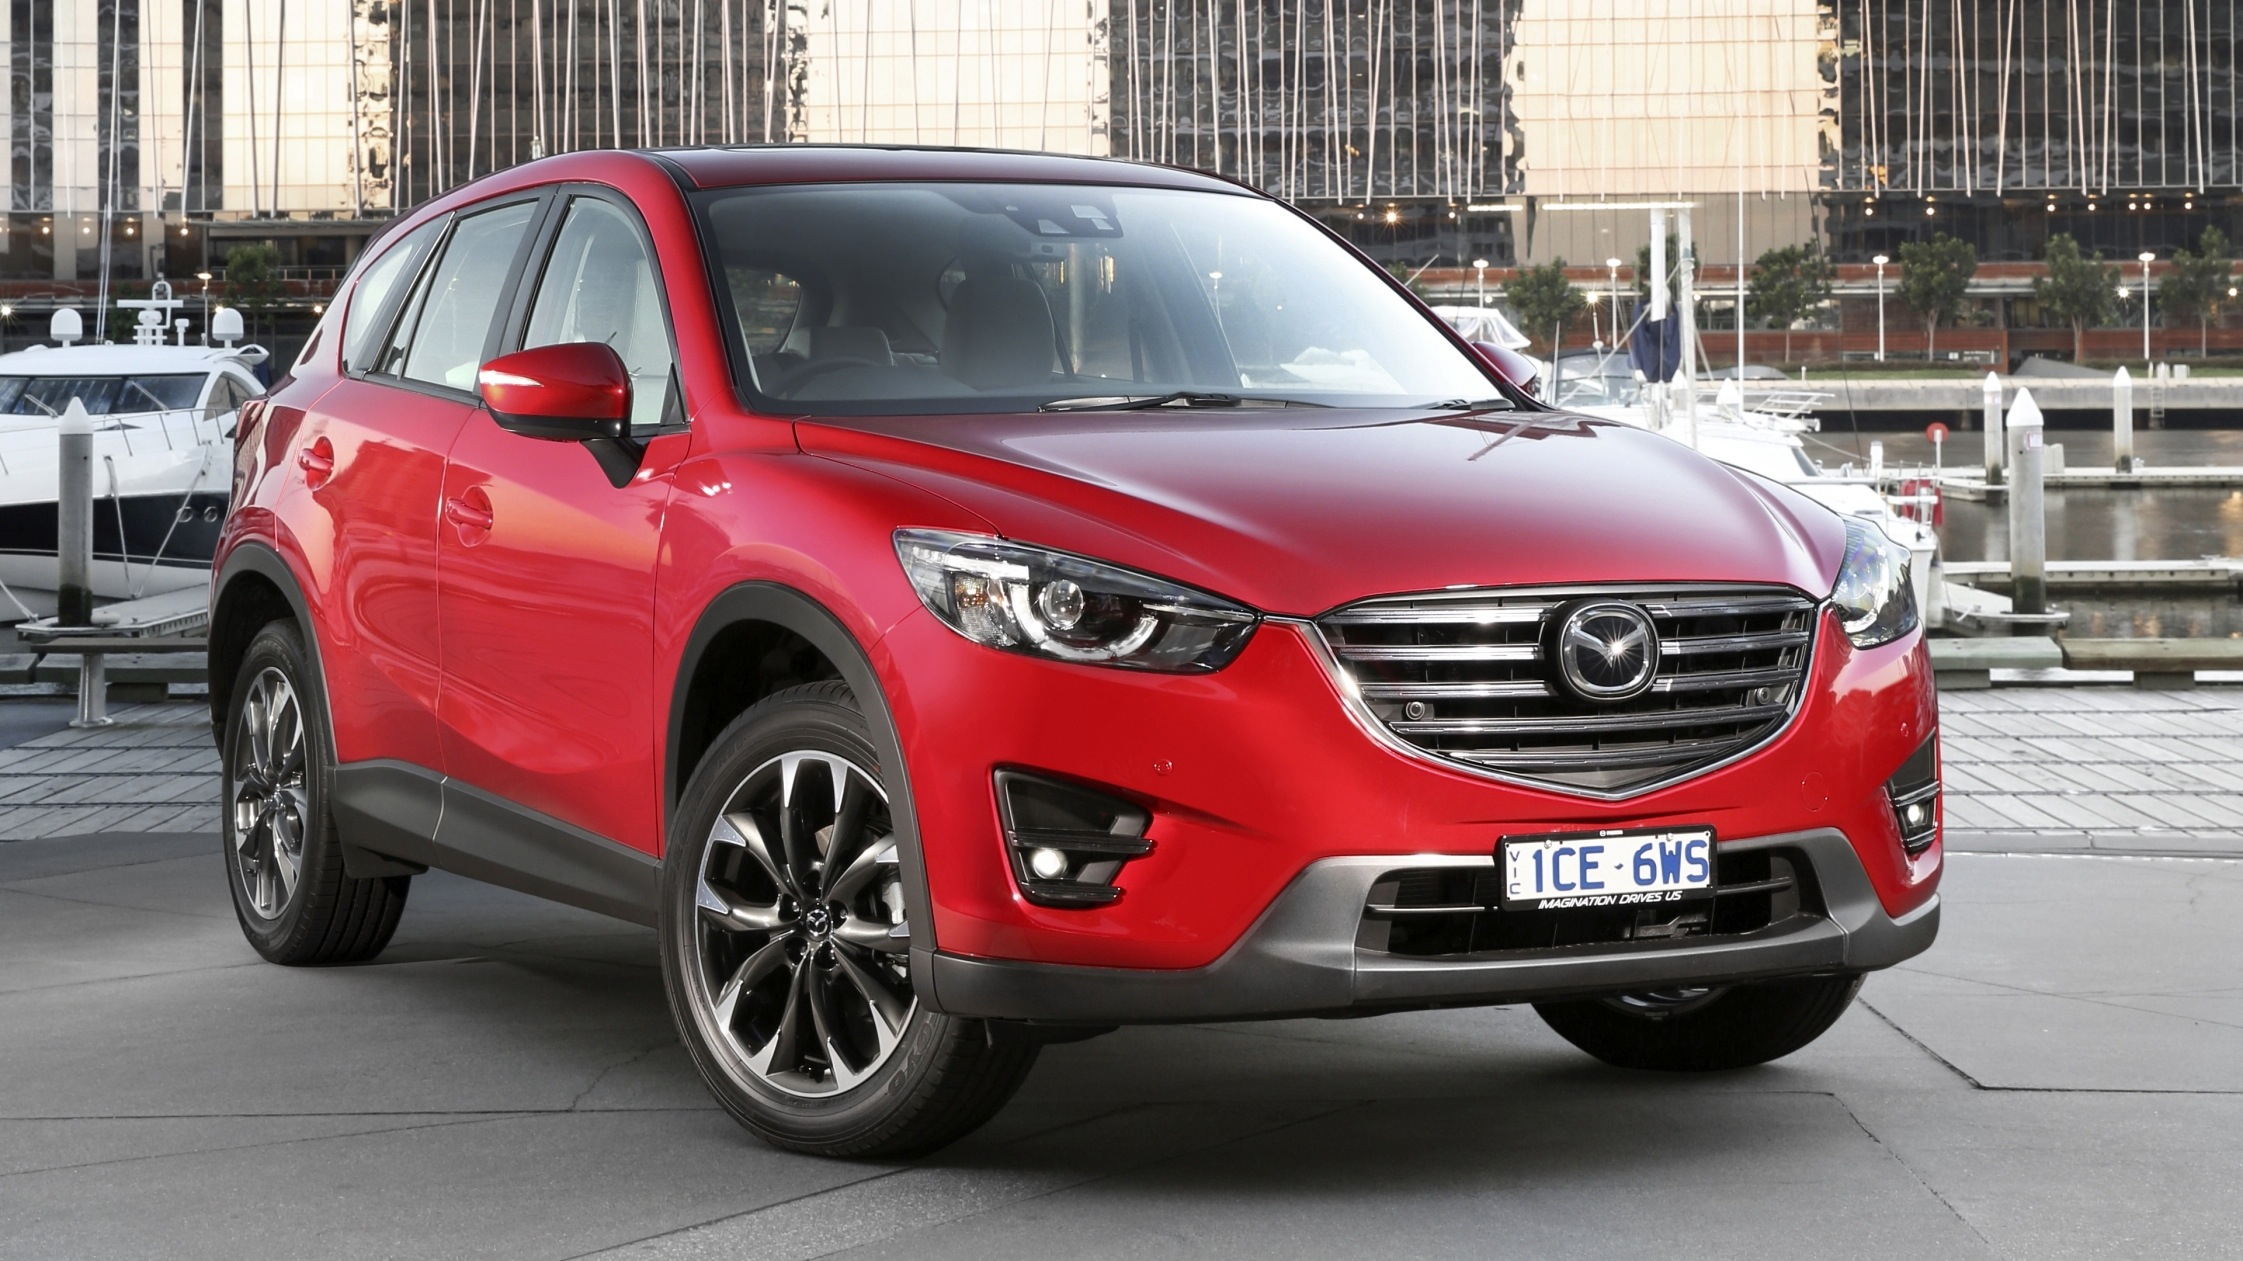 2015 mazda cx 5 pricing and specifications photos 1 of 19. Black Bedroom Furniture Sets. Home Design Ideas